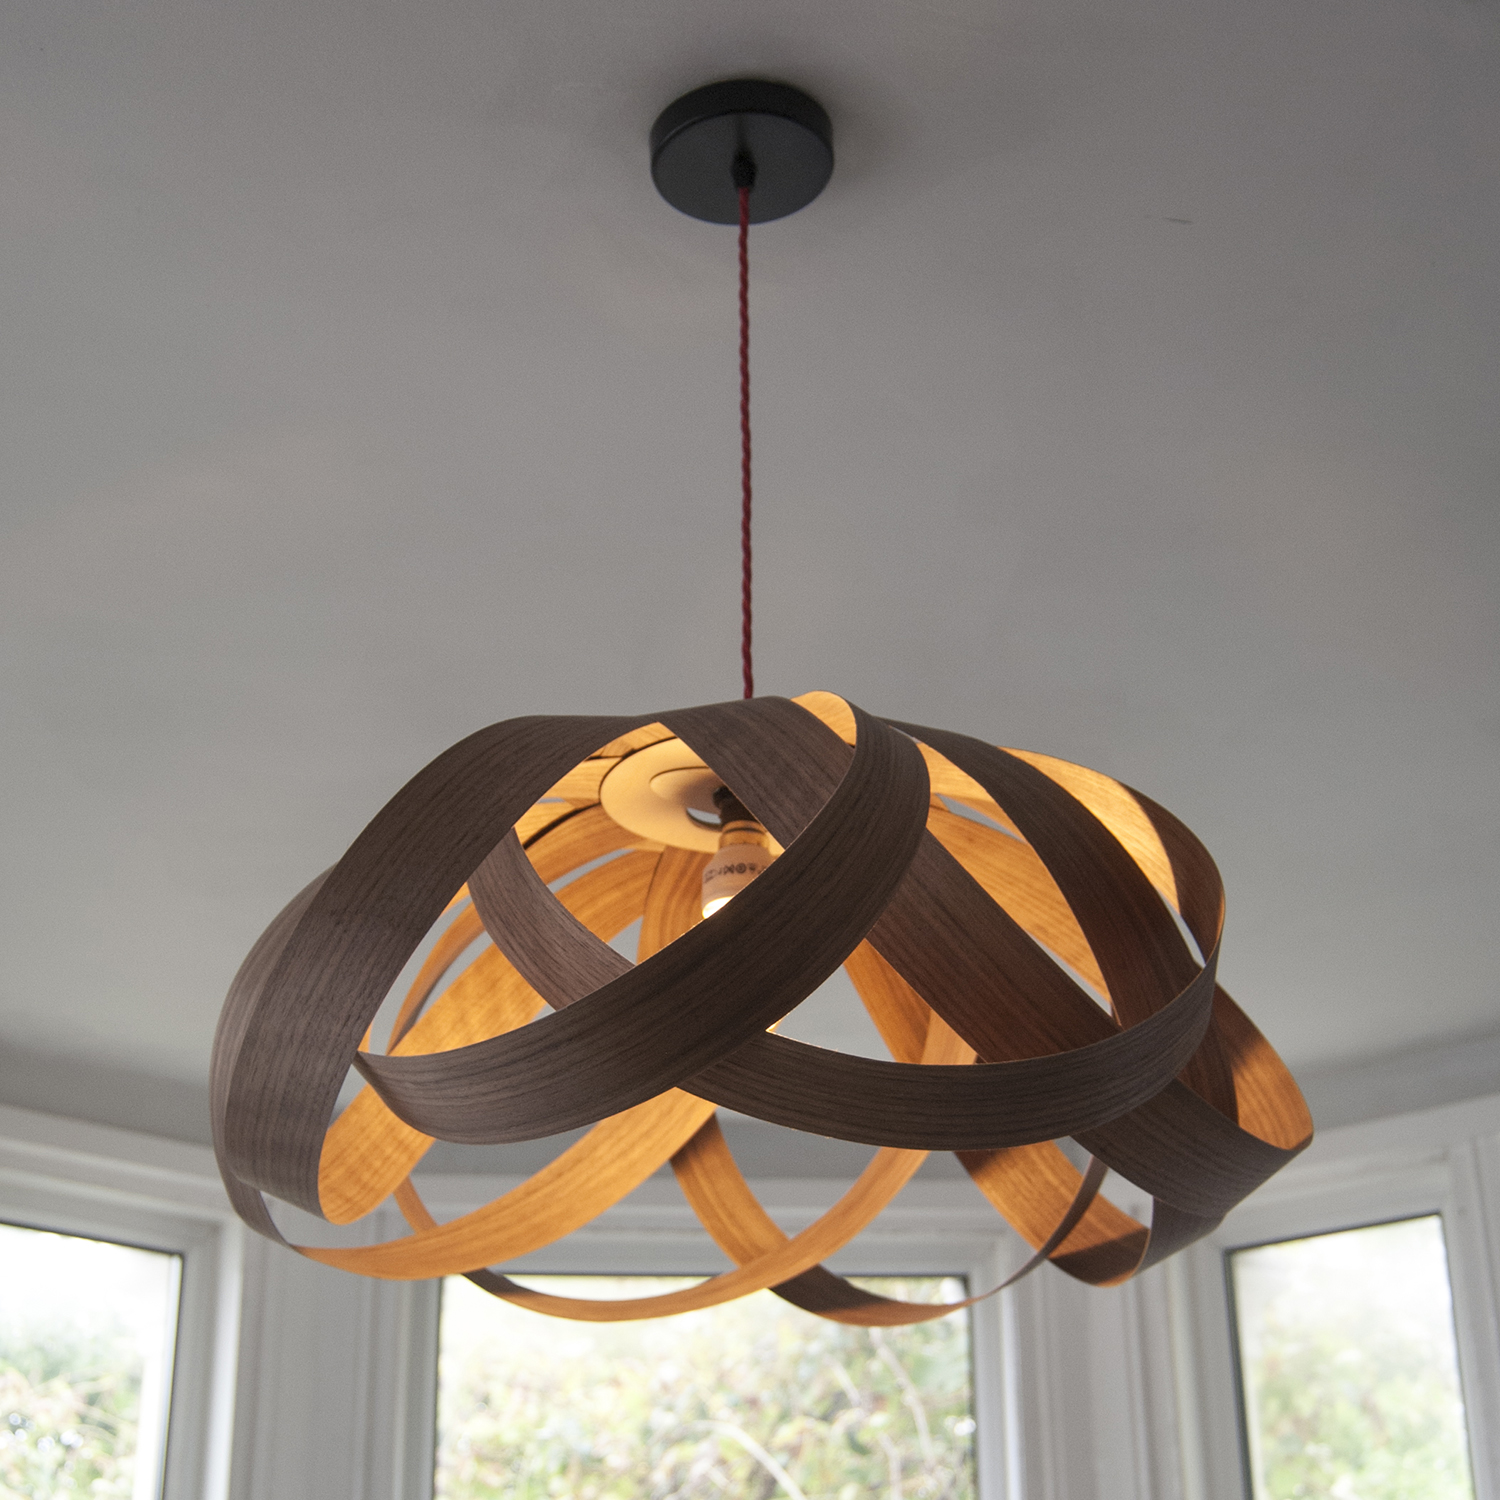 Excellent wooden ceiling light shade - Tulum.smsender.co NL47